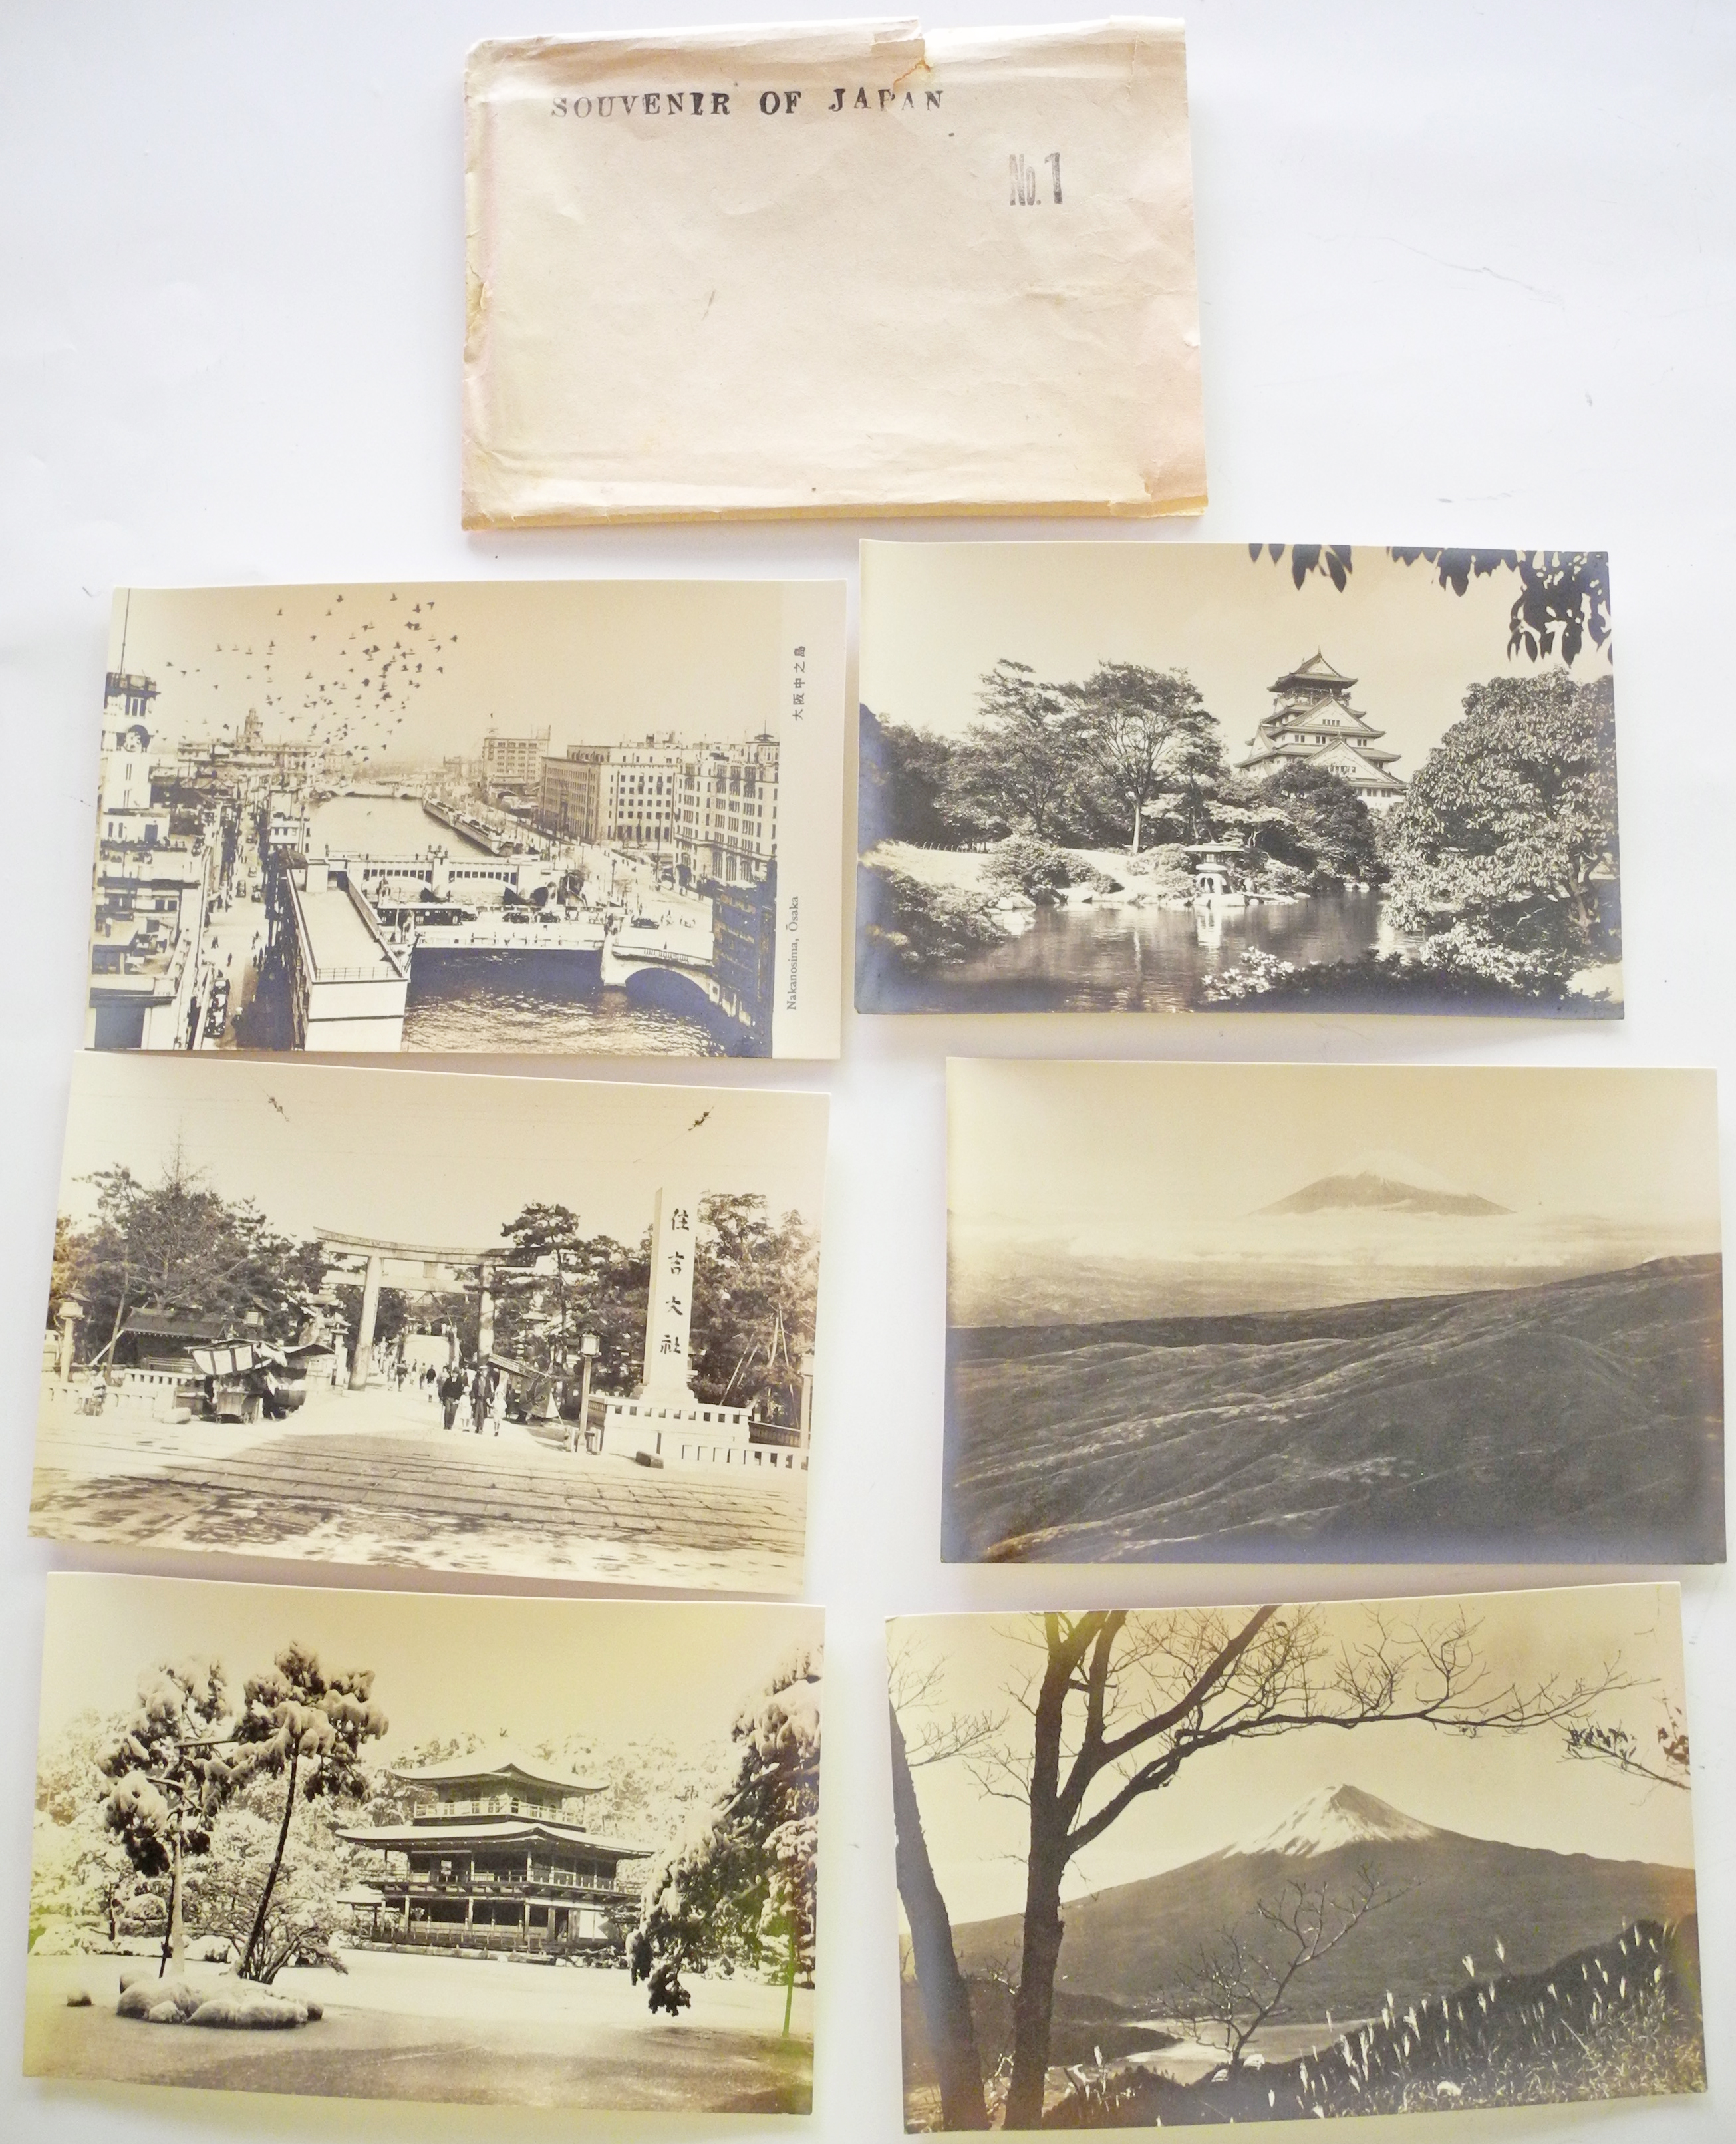 Japan 1945 souvenir postcards